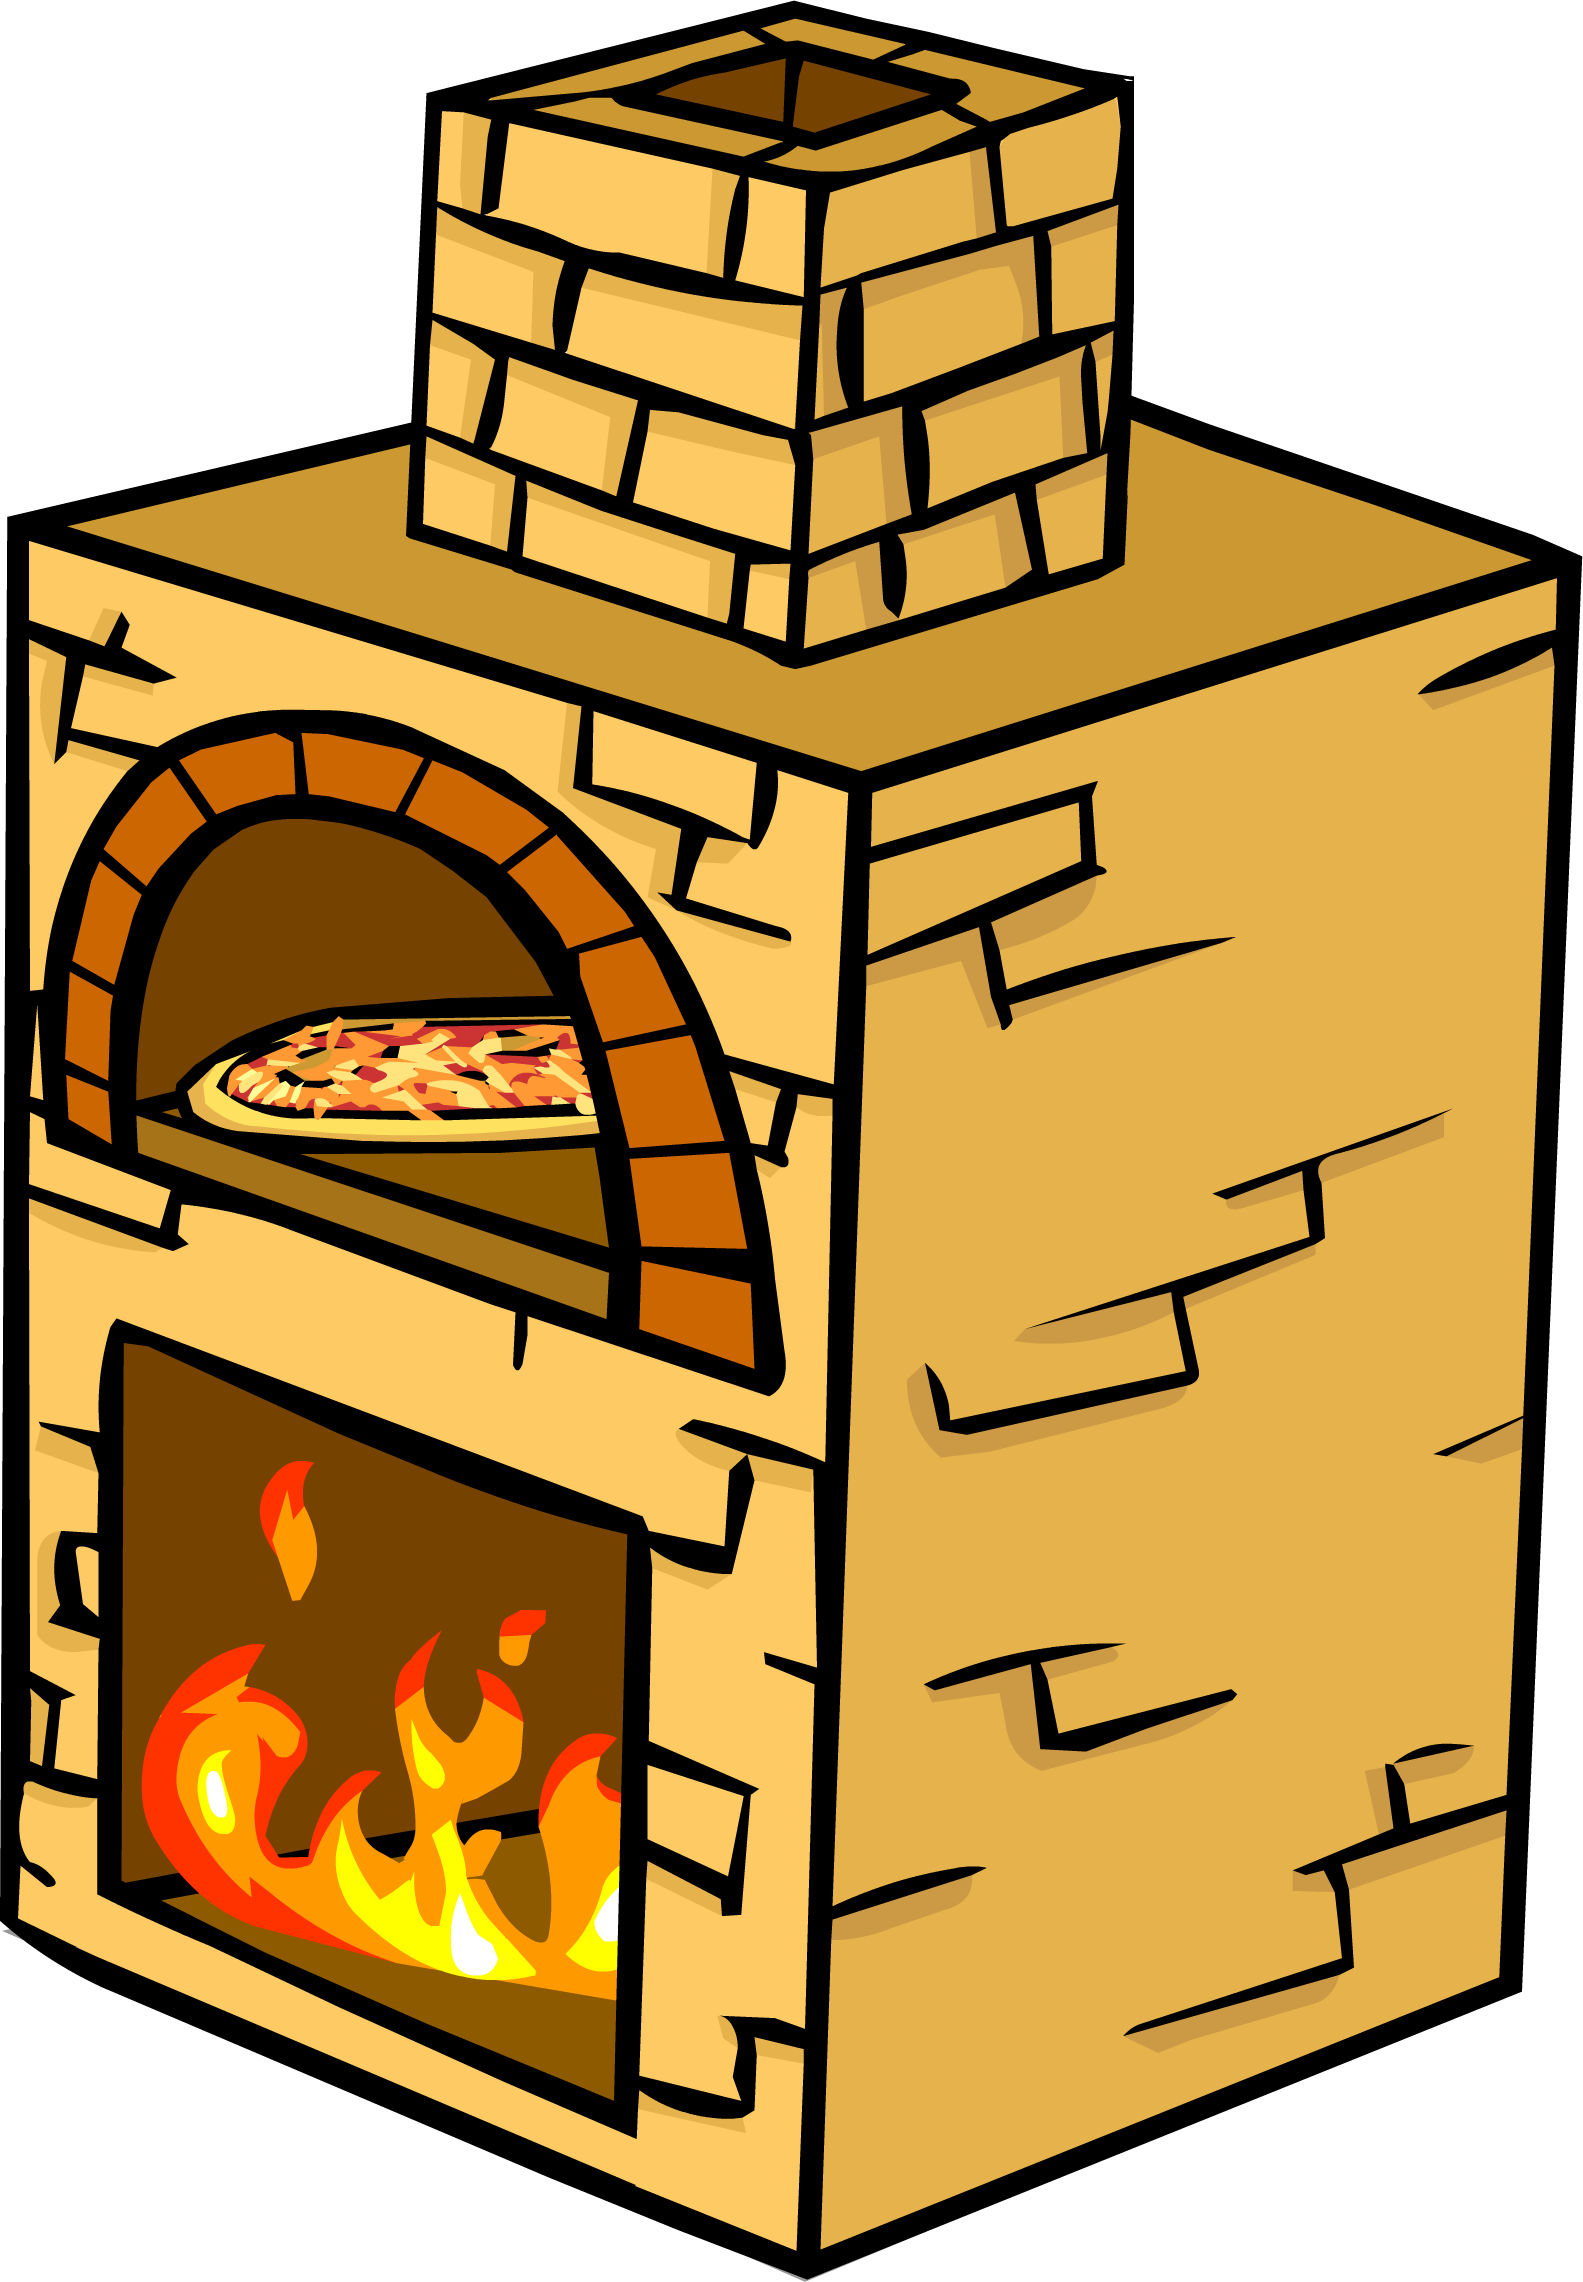 Pizza clipart file, Pizza file Transparent FREE for download.